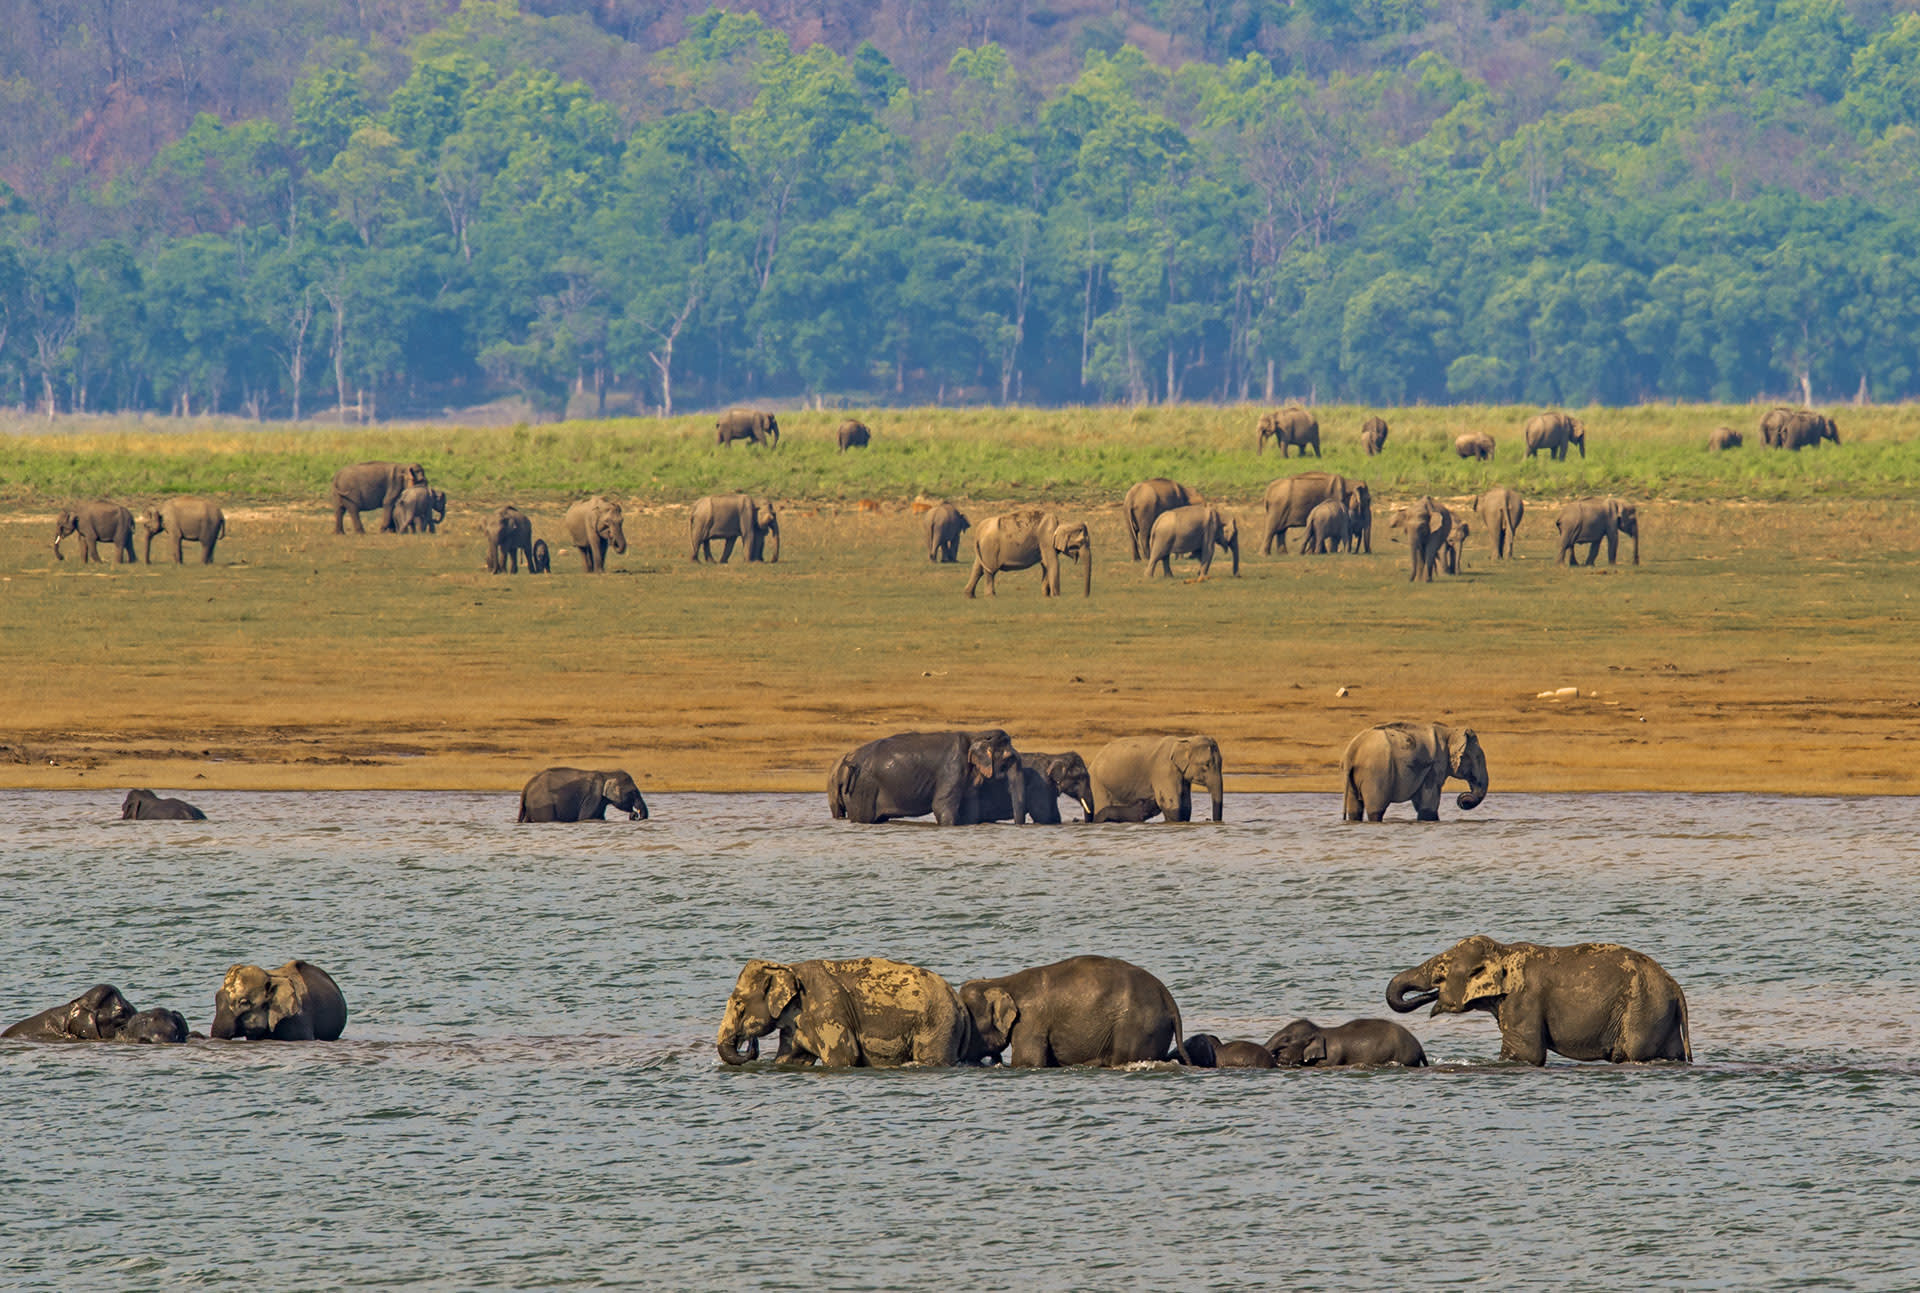 We tend to associate dominance with violence and aggression, but these displays are meant to diffuse conflict. They are an integral part of the life of male elephants, from the time they are young calves in the natal group, to their mature years in solitary existence — and they help maintain cooperation and the family structure.